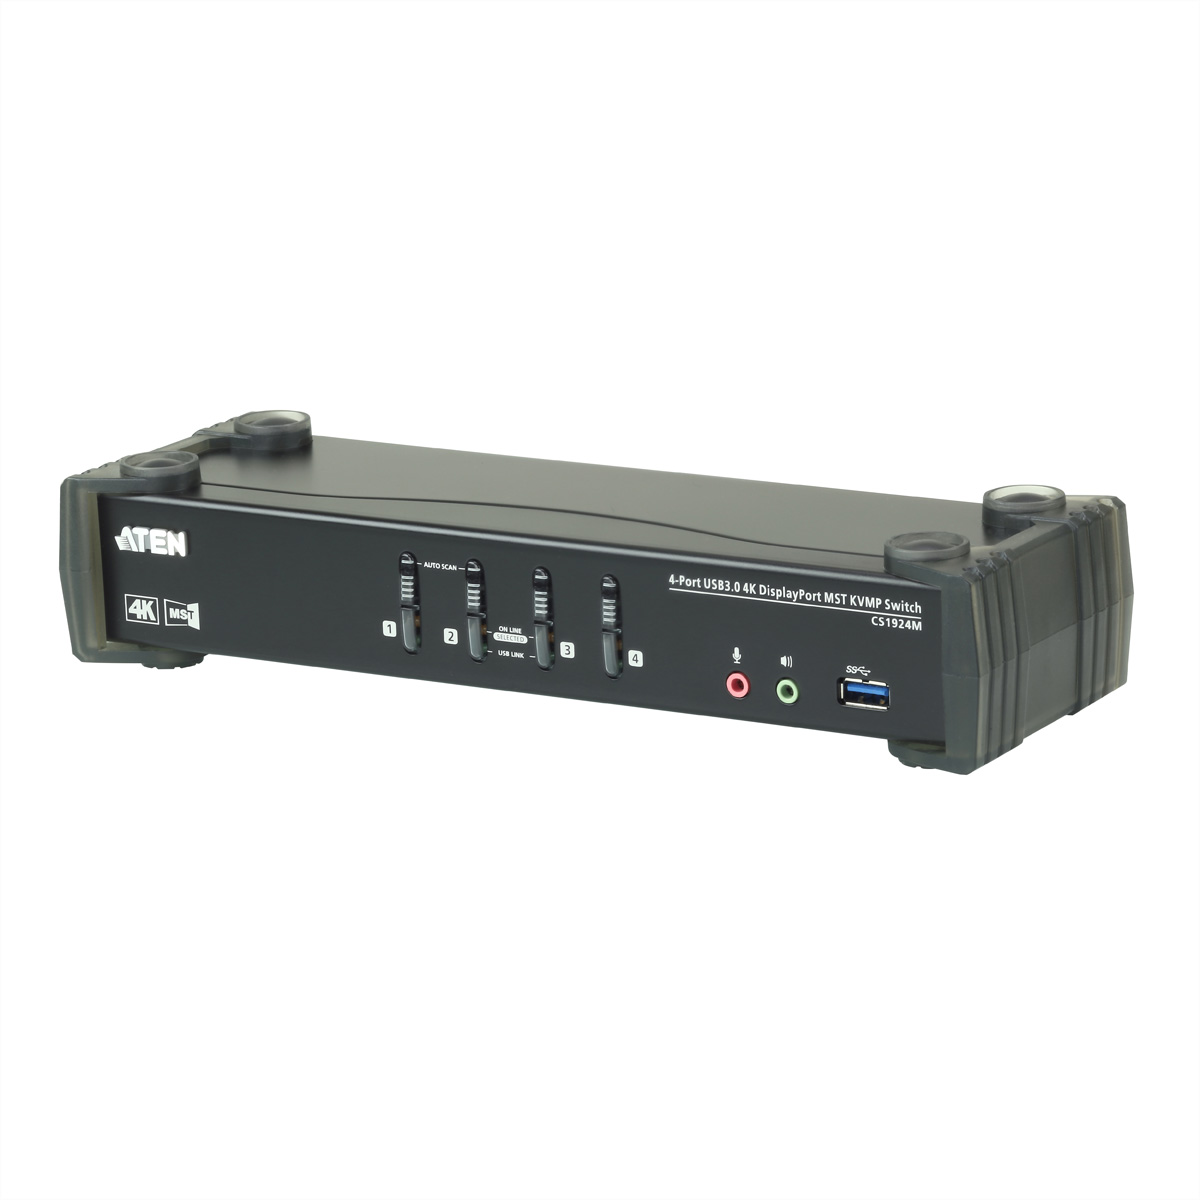 ATEN CS1924M 4-Port USB 3.0 4K DisplayPort MST KVM Switch